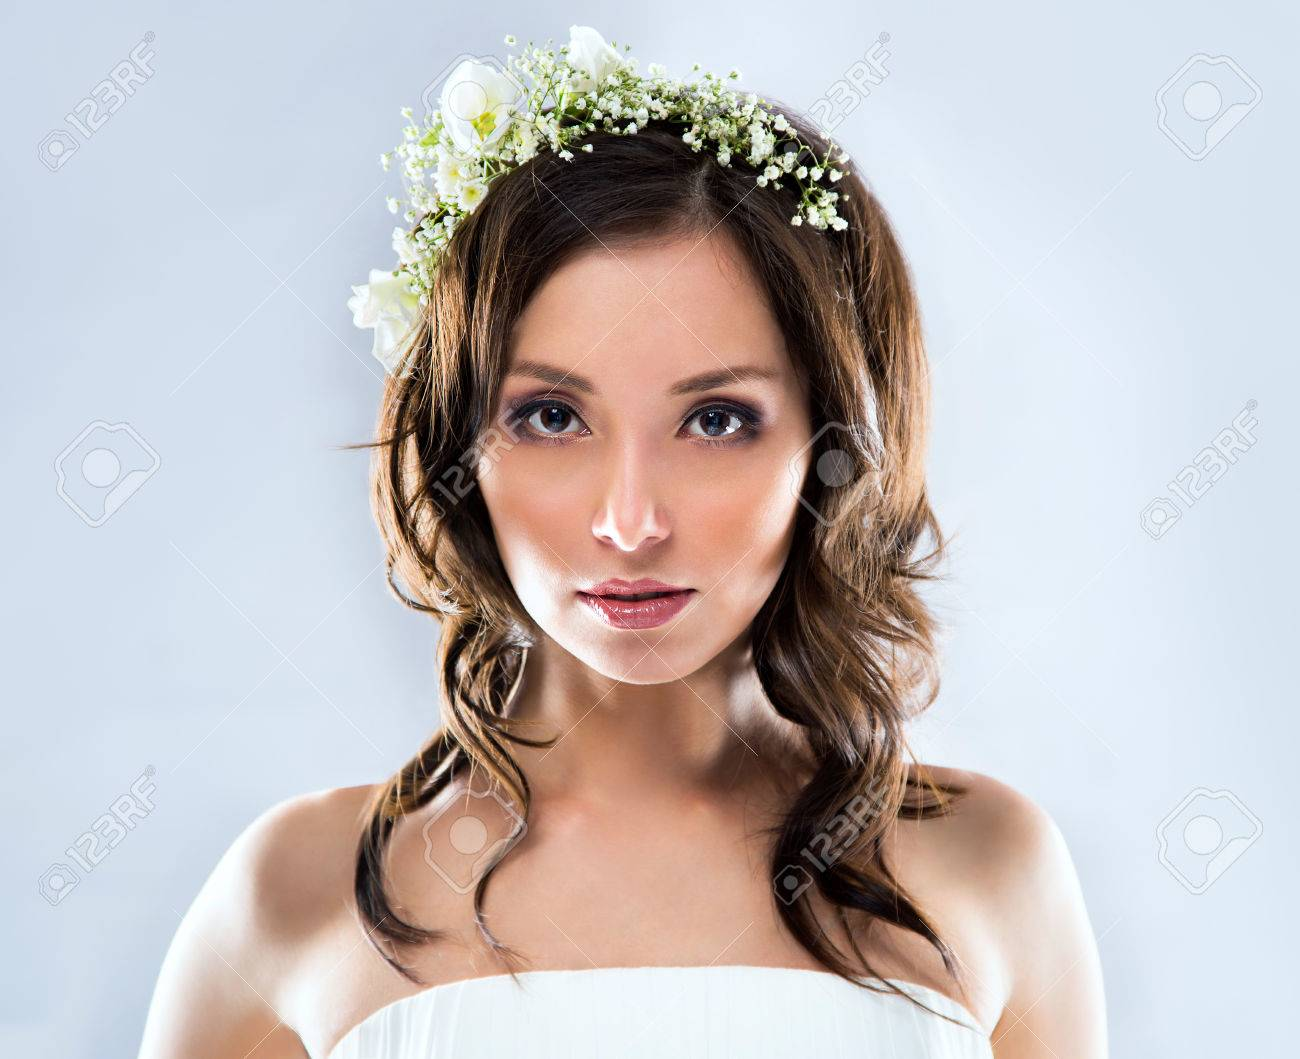 Beautiful Bride Wearing White Wedding Dress With Flowers On Her ...